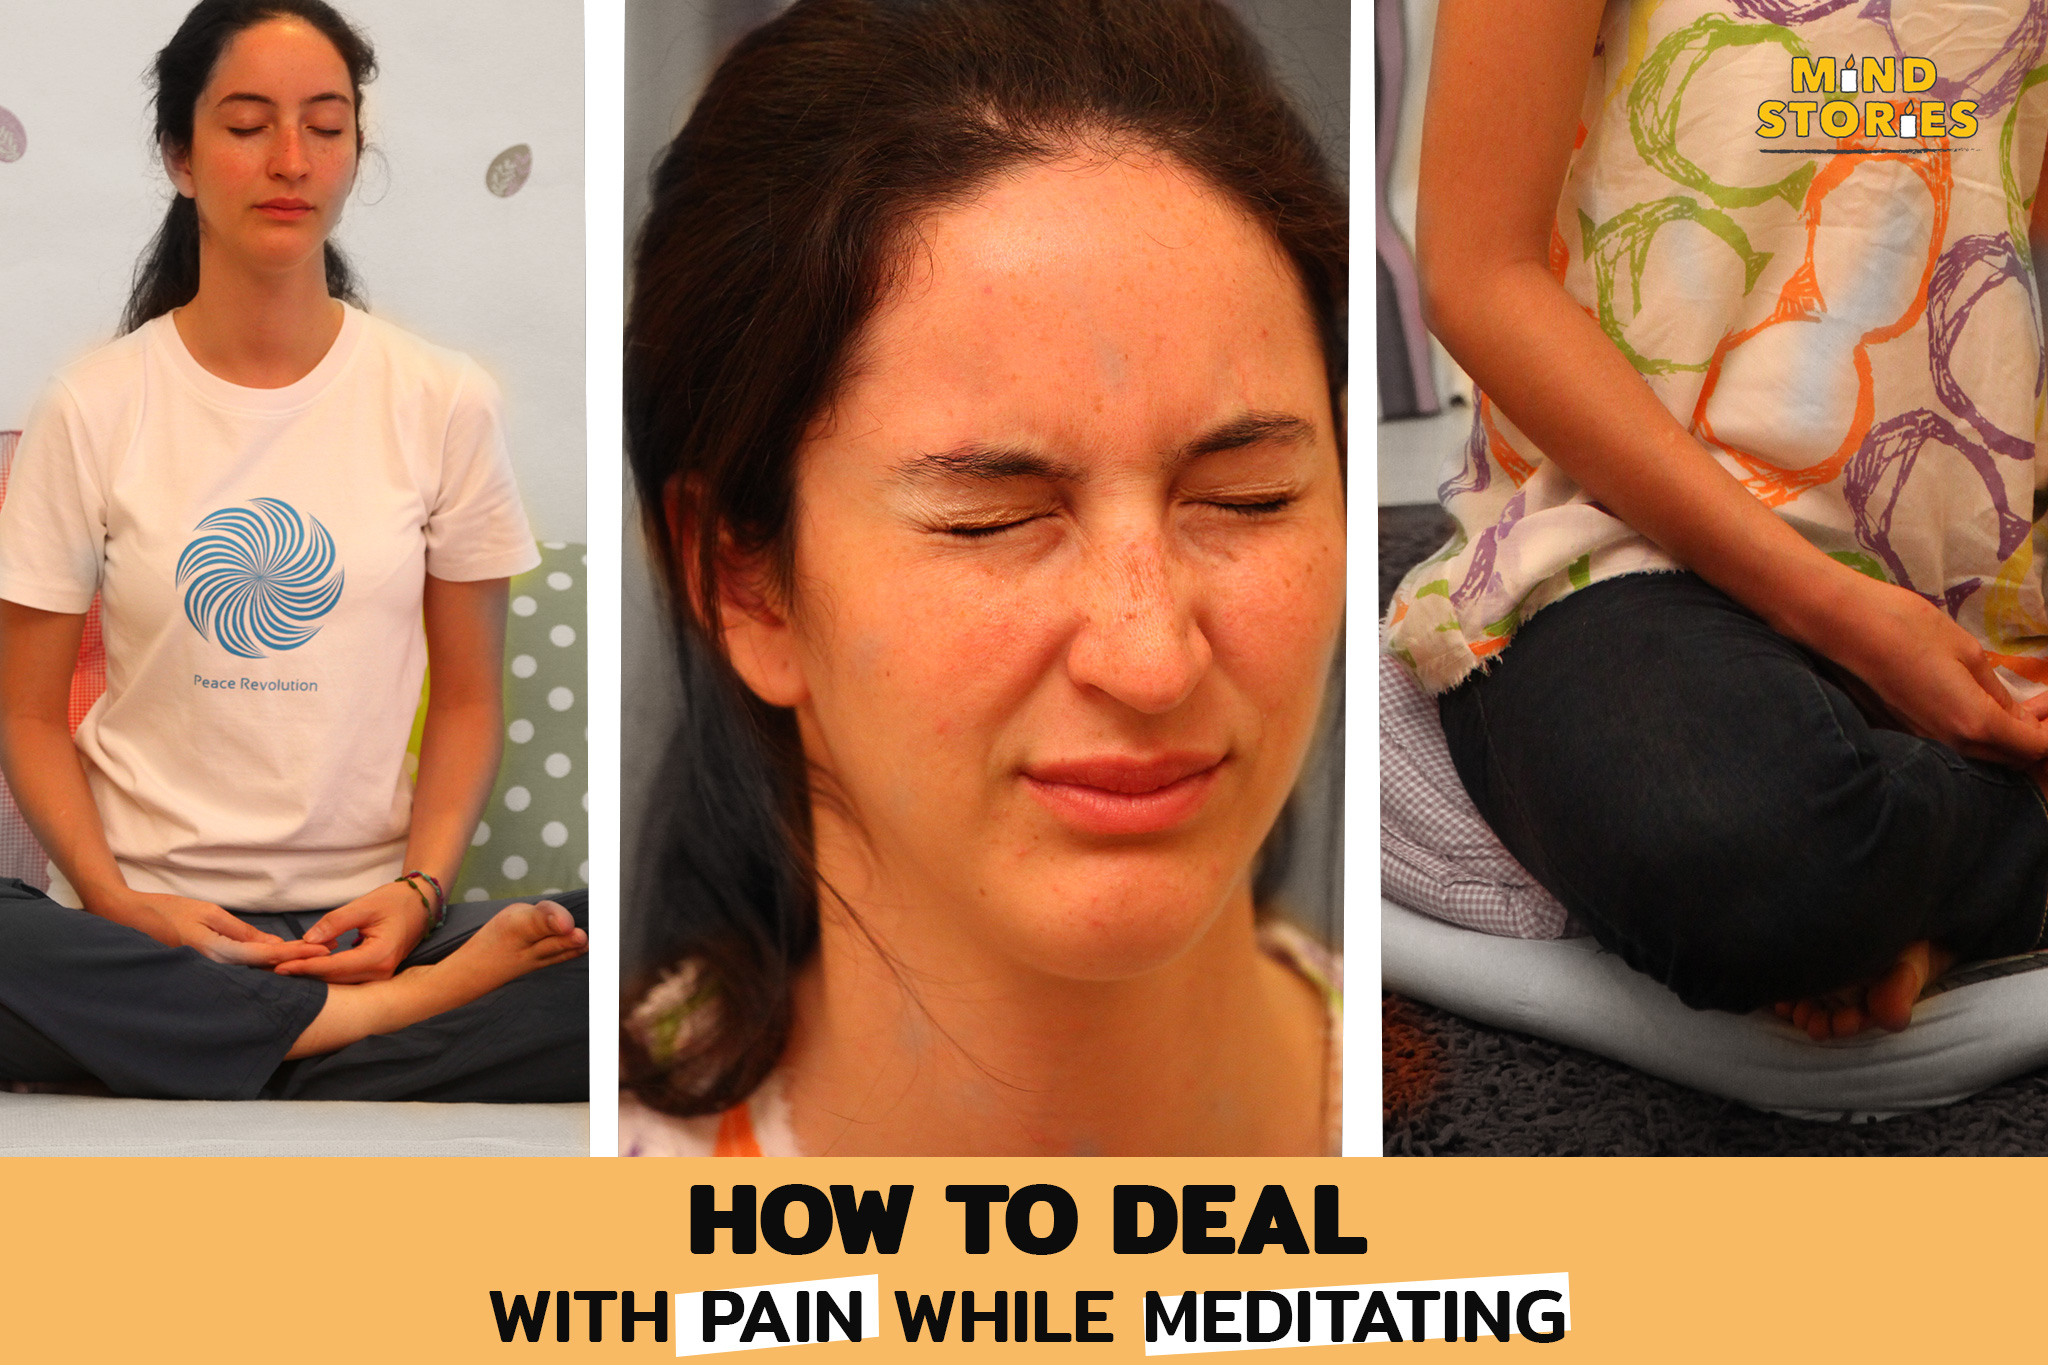 How to deal with pain while meditating?